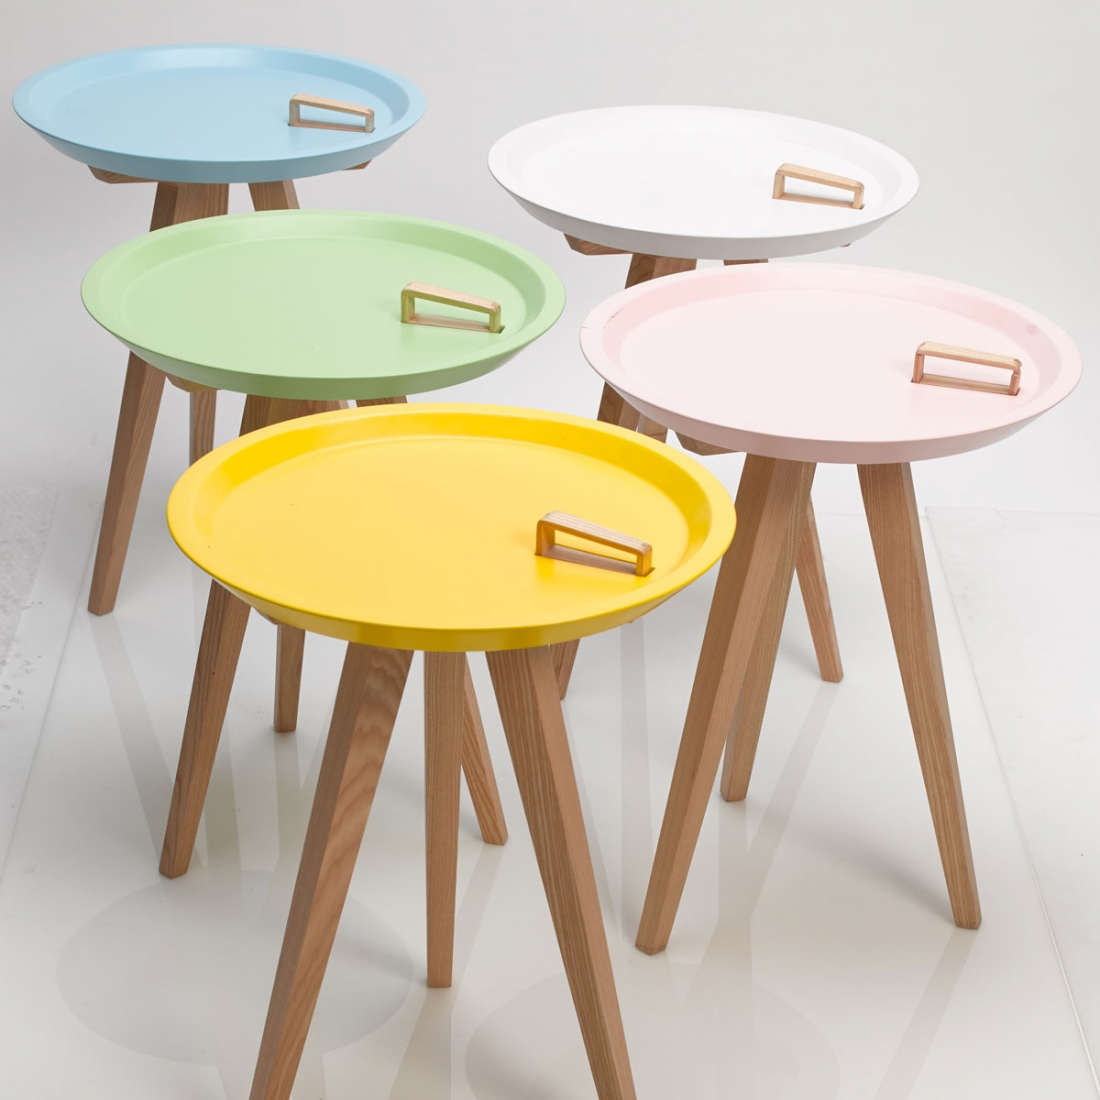 Table basse pop-pop design Compas